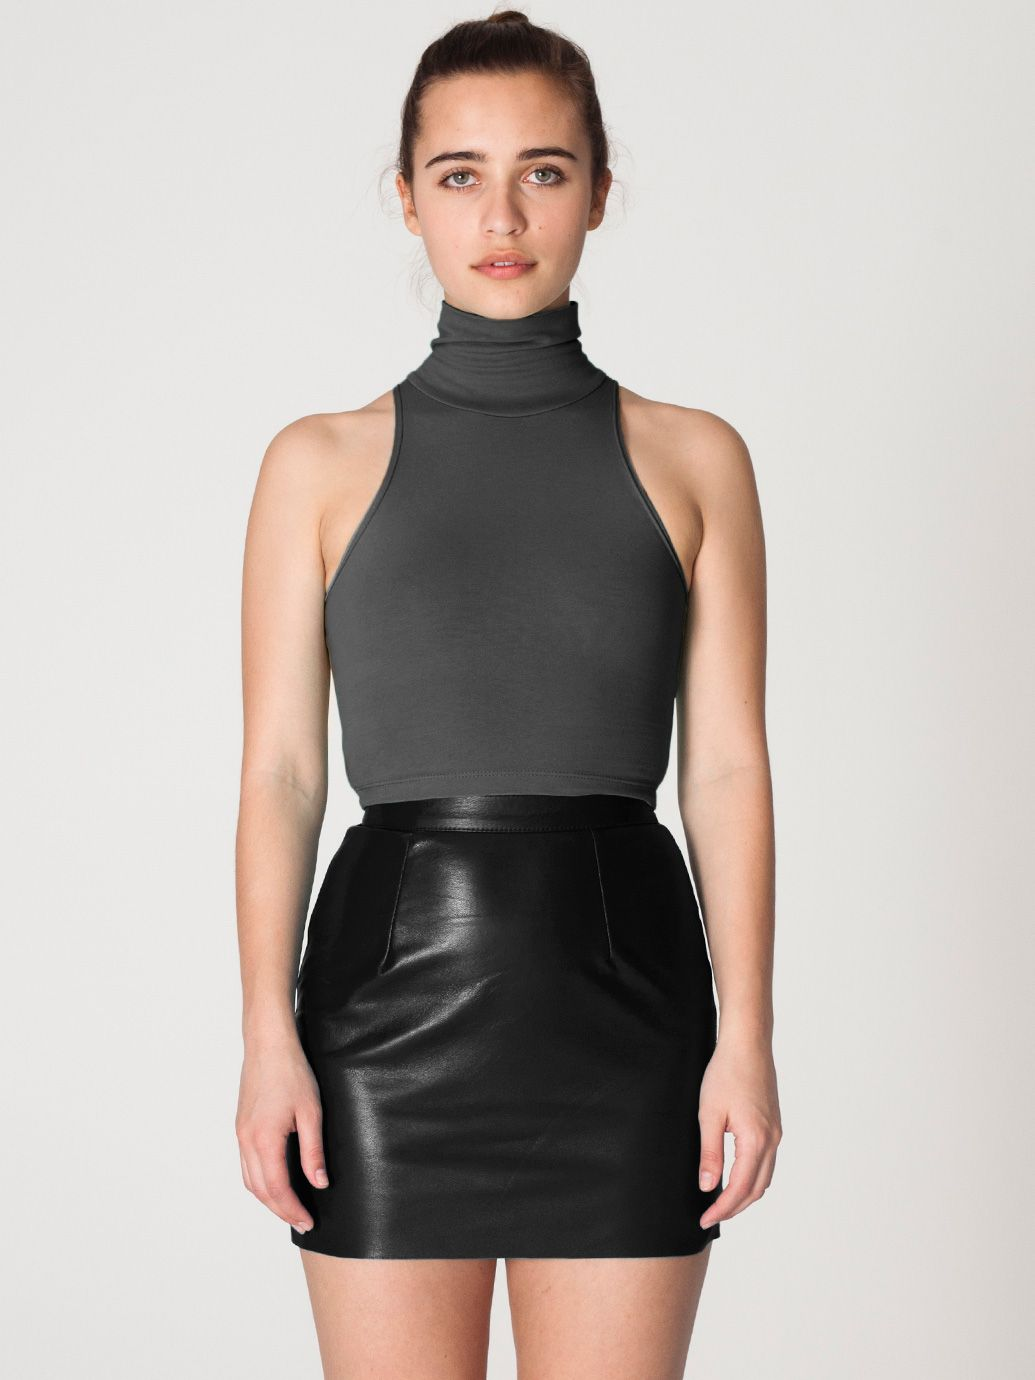 The Leather Mini Skirt | Skirts | New & Now's Women | American ...